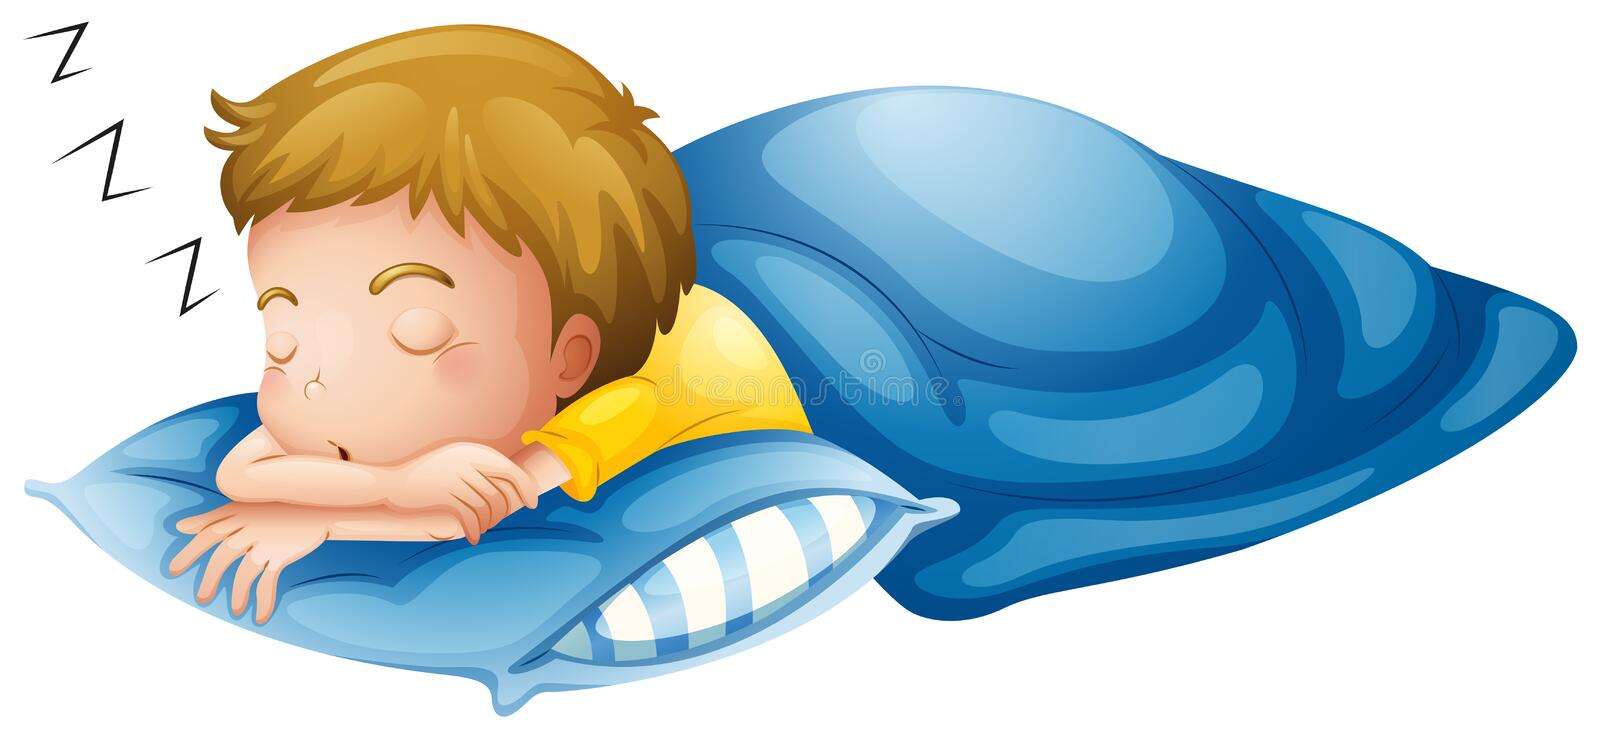 A little boy sleeping stock illustration